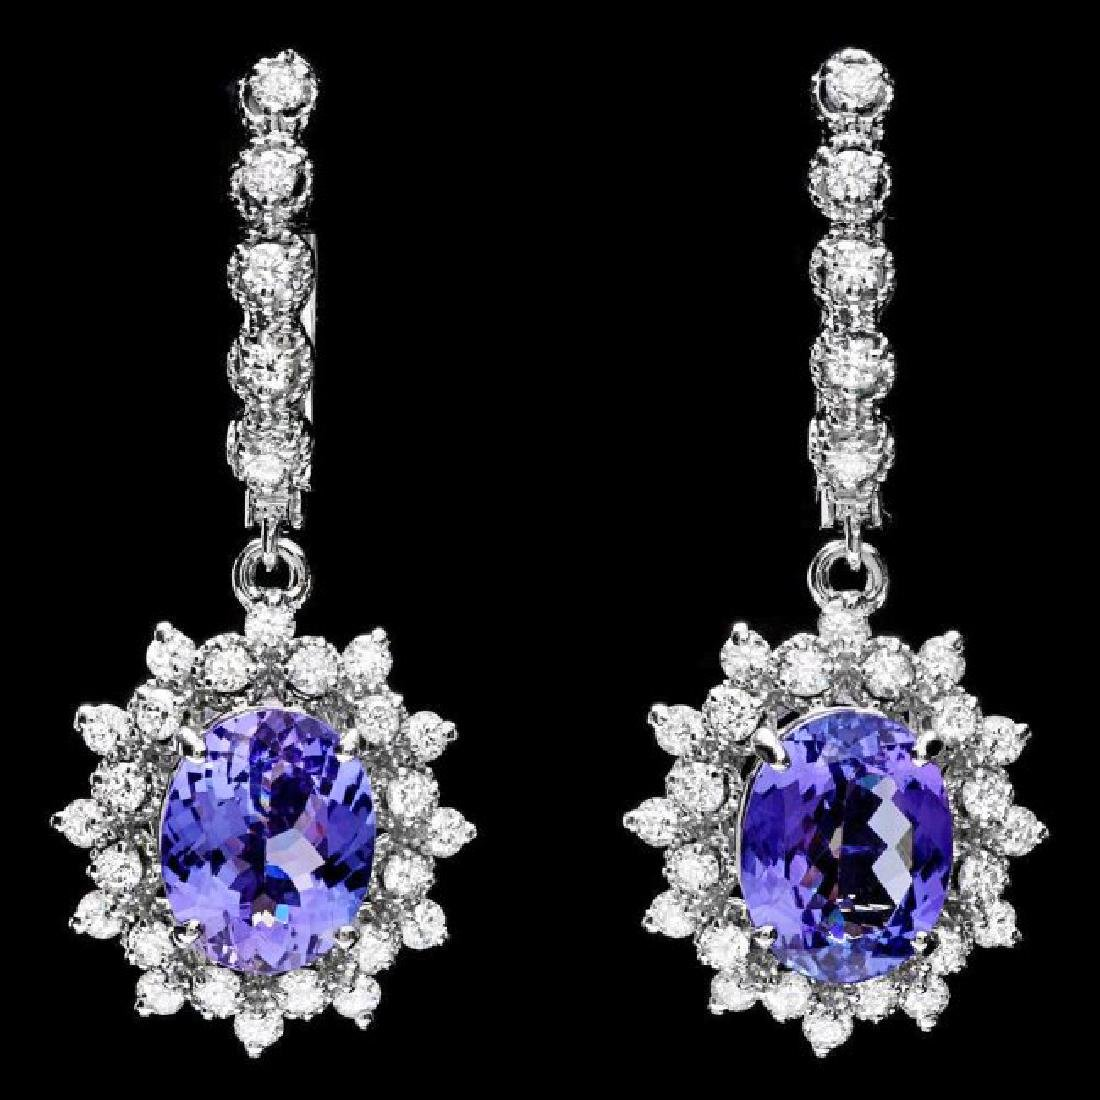 14k Gold 5ct Tanzanite 1.60ct Diamond Earrings